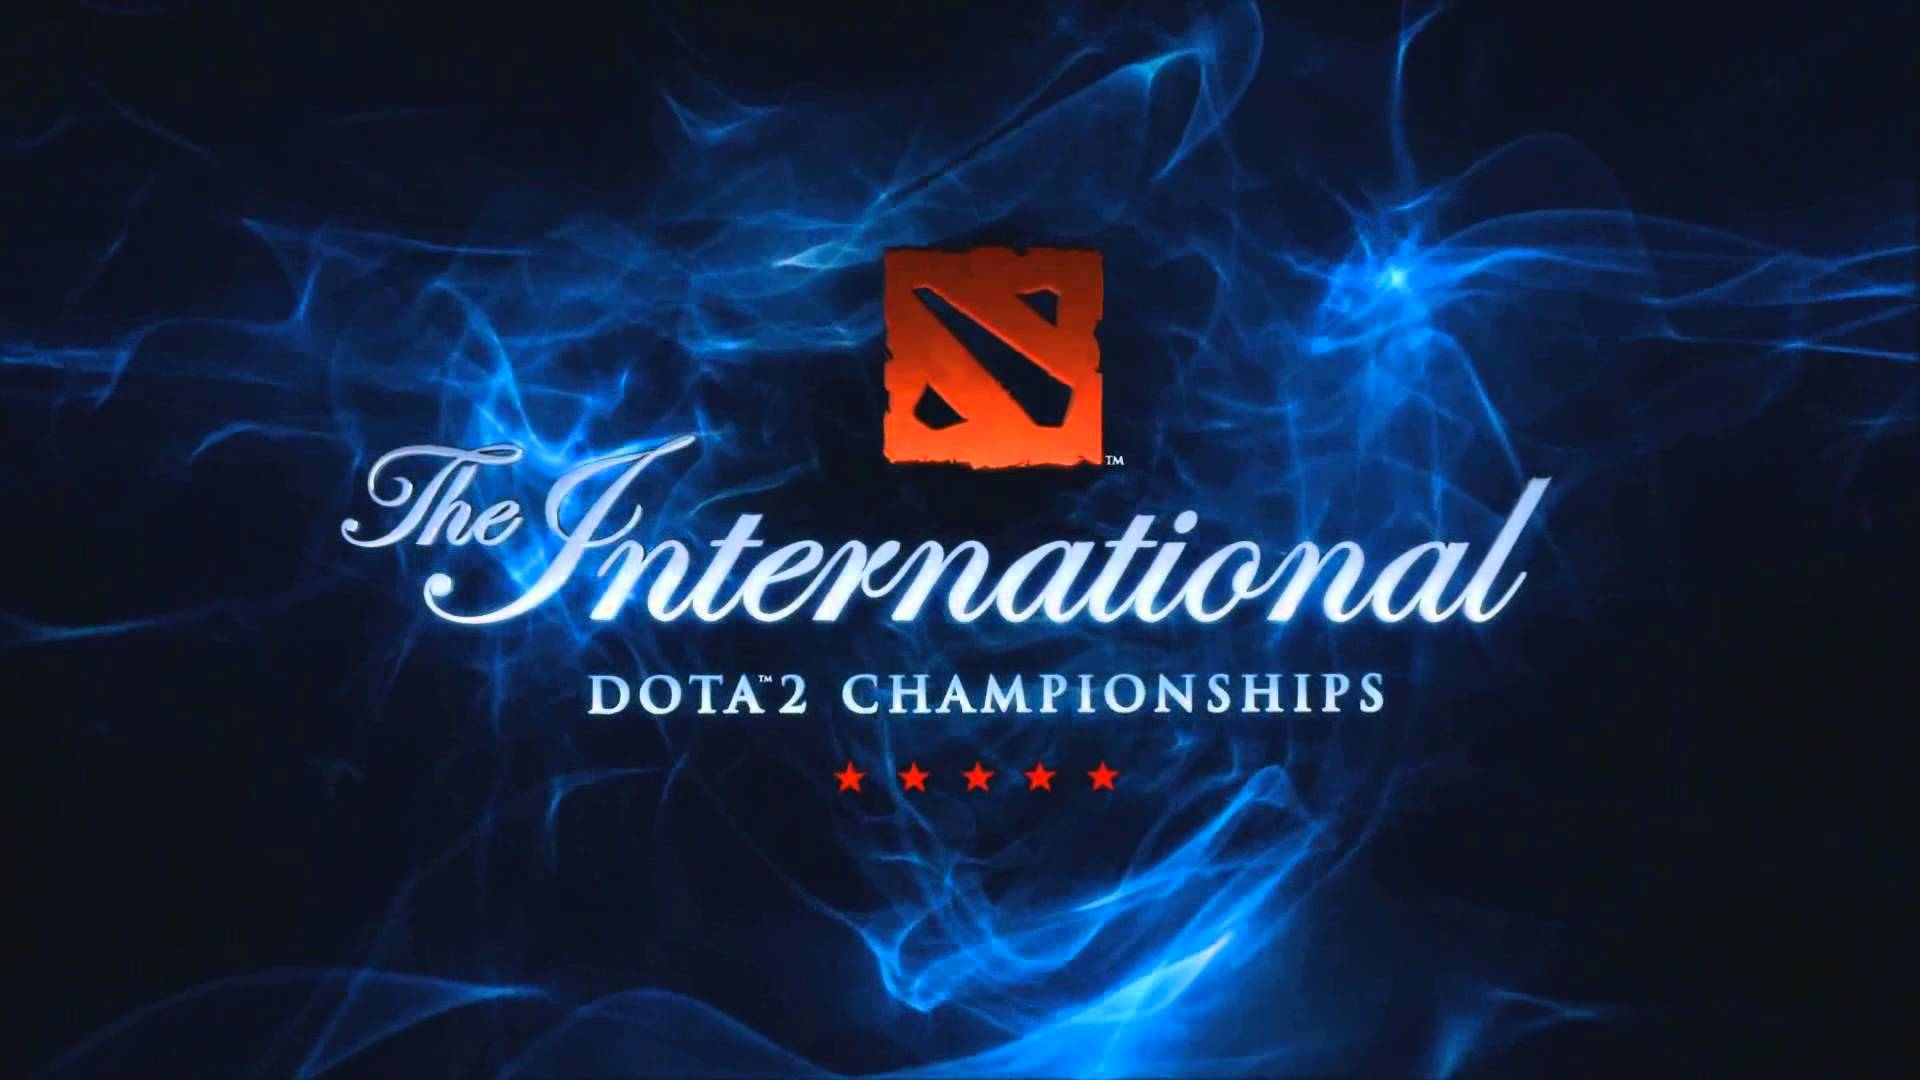 Watch The Dota 2 International Championships on ESPN